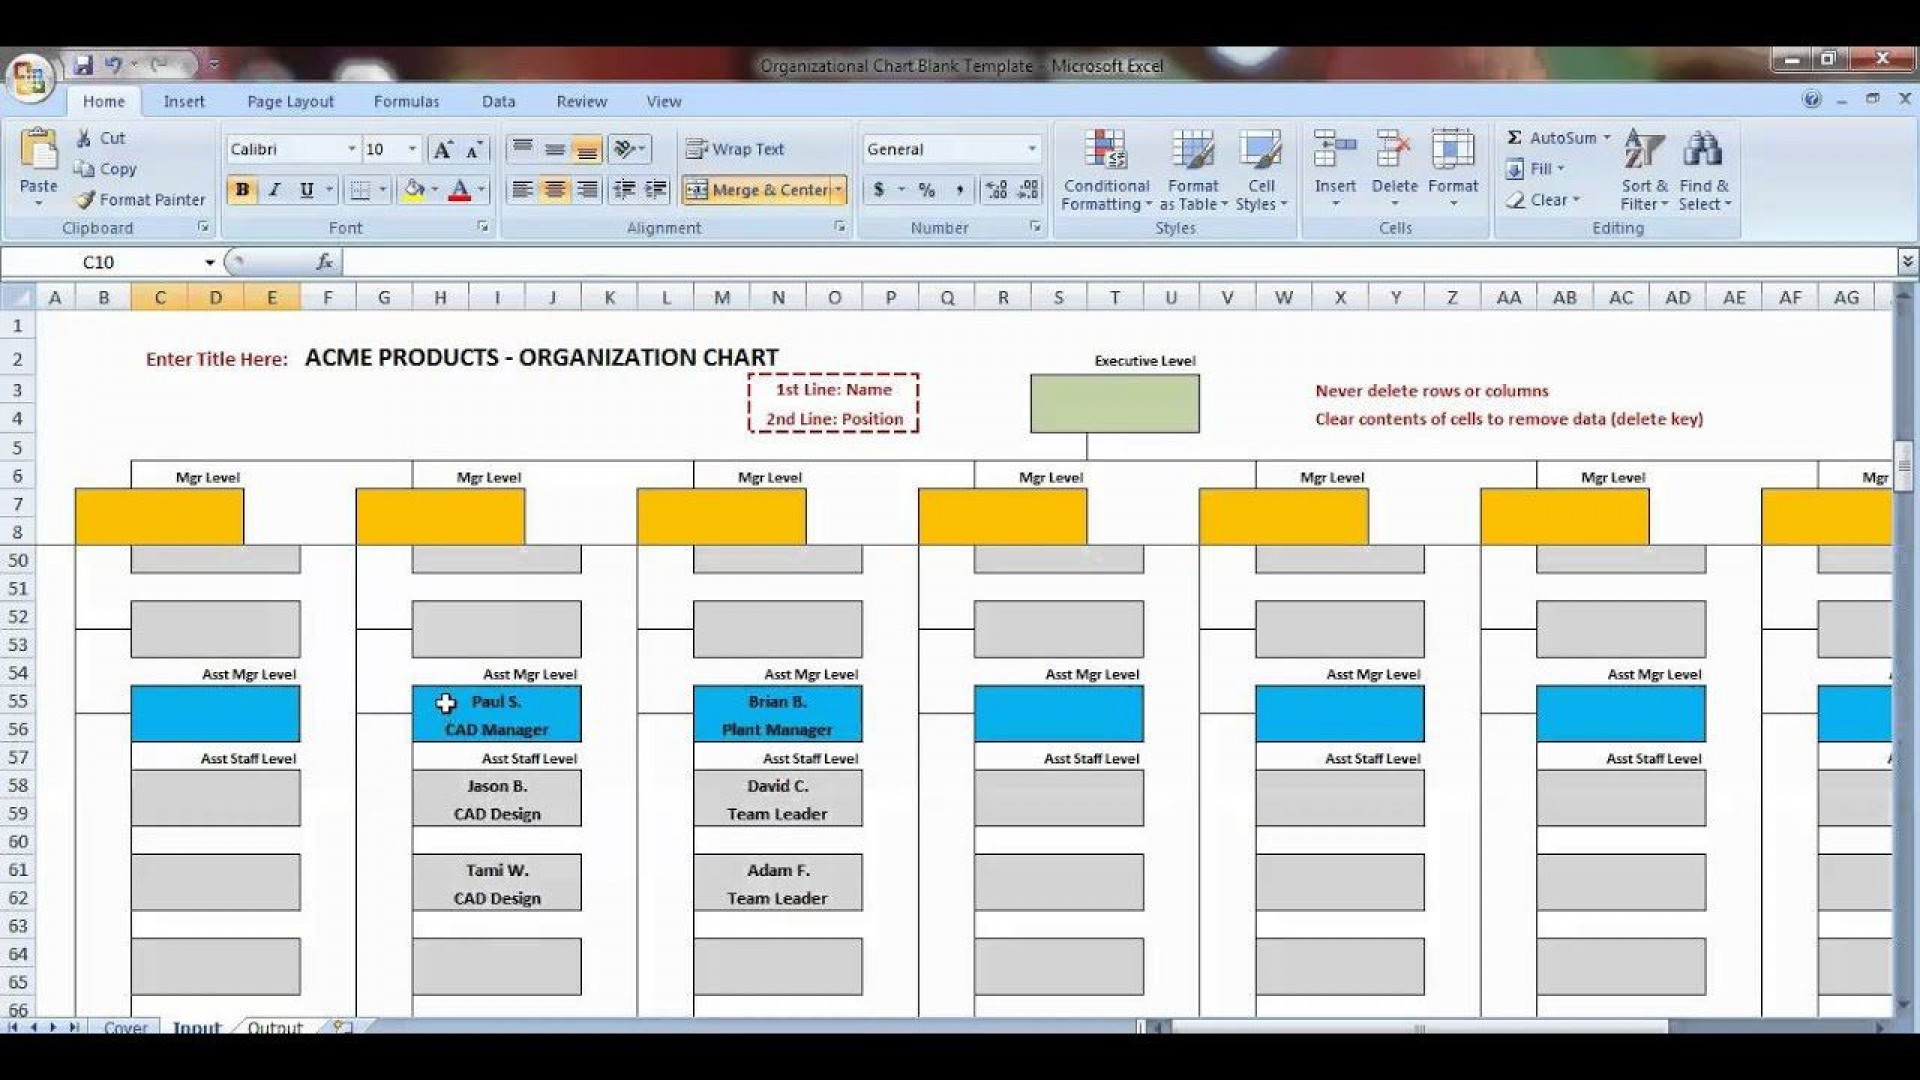 007 Awful Organizational Chart Template Excel Design  Org Download Free 20101920